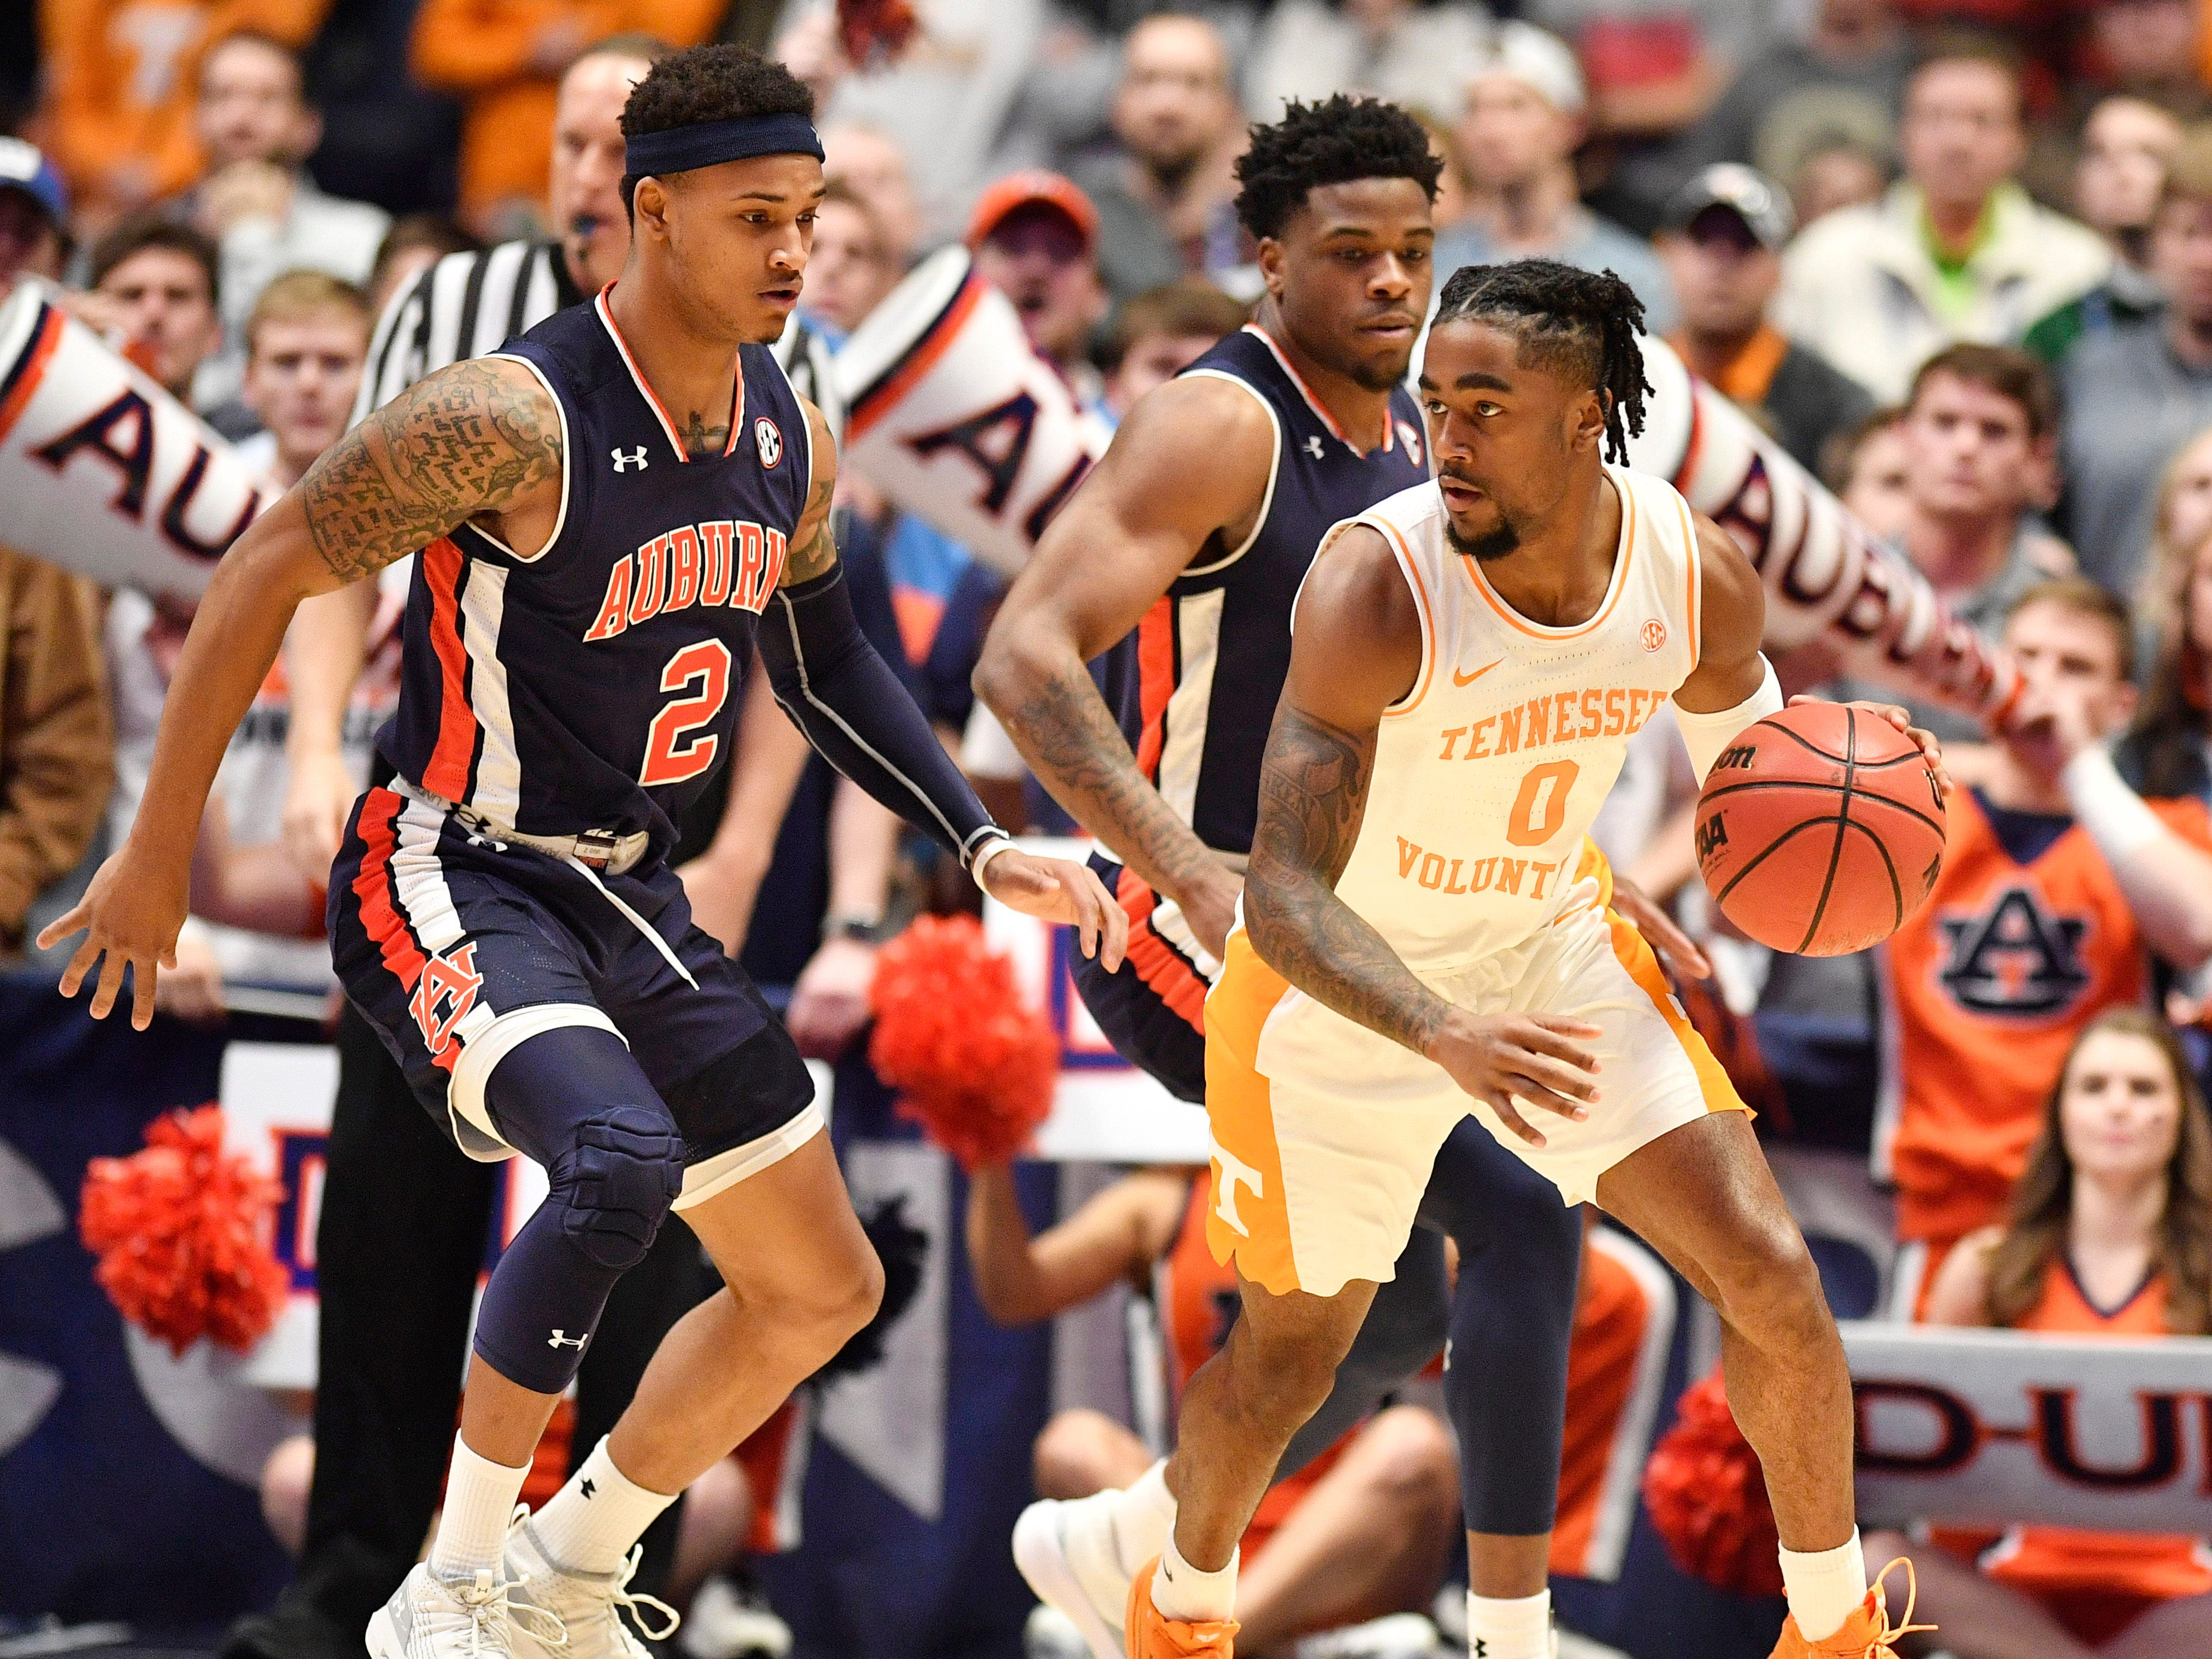 Tennessee guard Jordan Bone (0) moves the ball defended by Auburn guard Bryce Brown (2) during the first half of the SEC Men's Basketball Tournament championship game at Bridgestone Arena in Nashville, Tenn., Sunday, March 17, 2019.